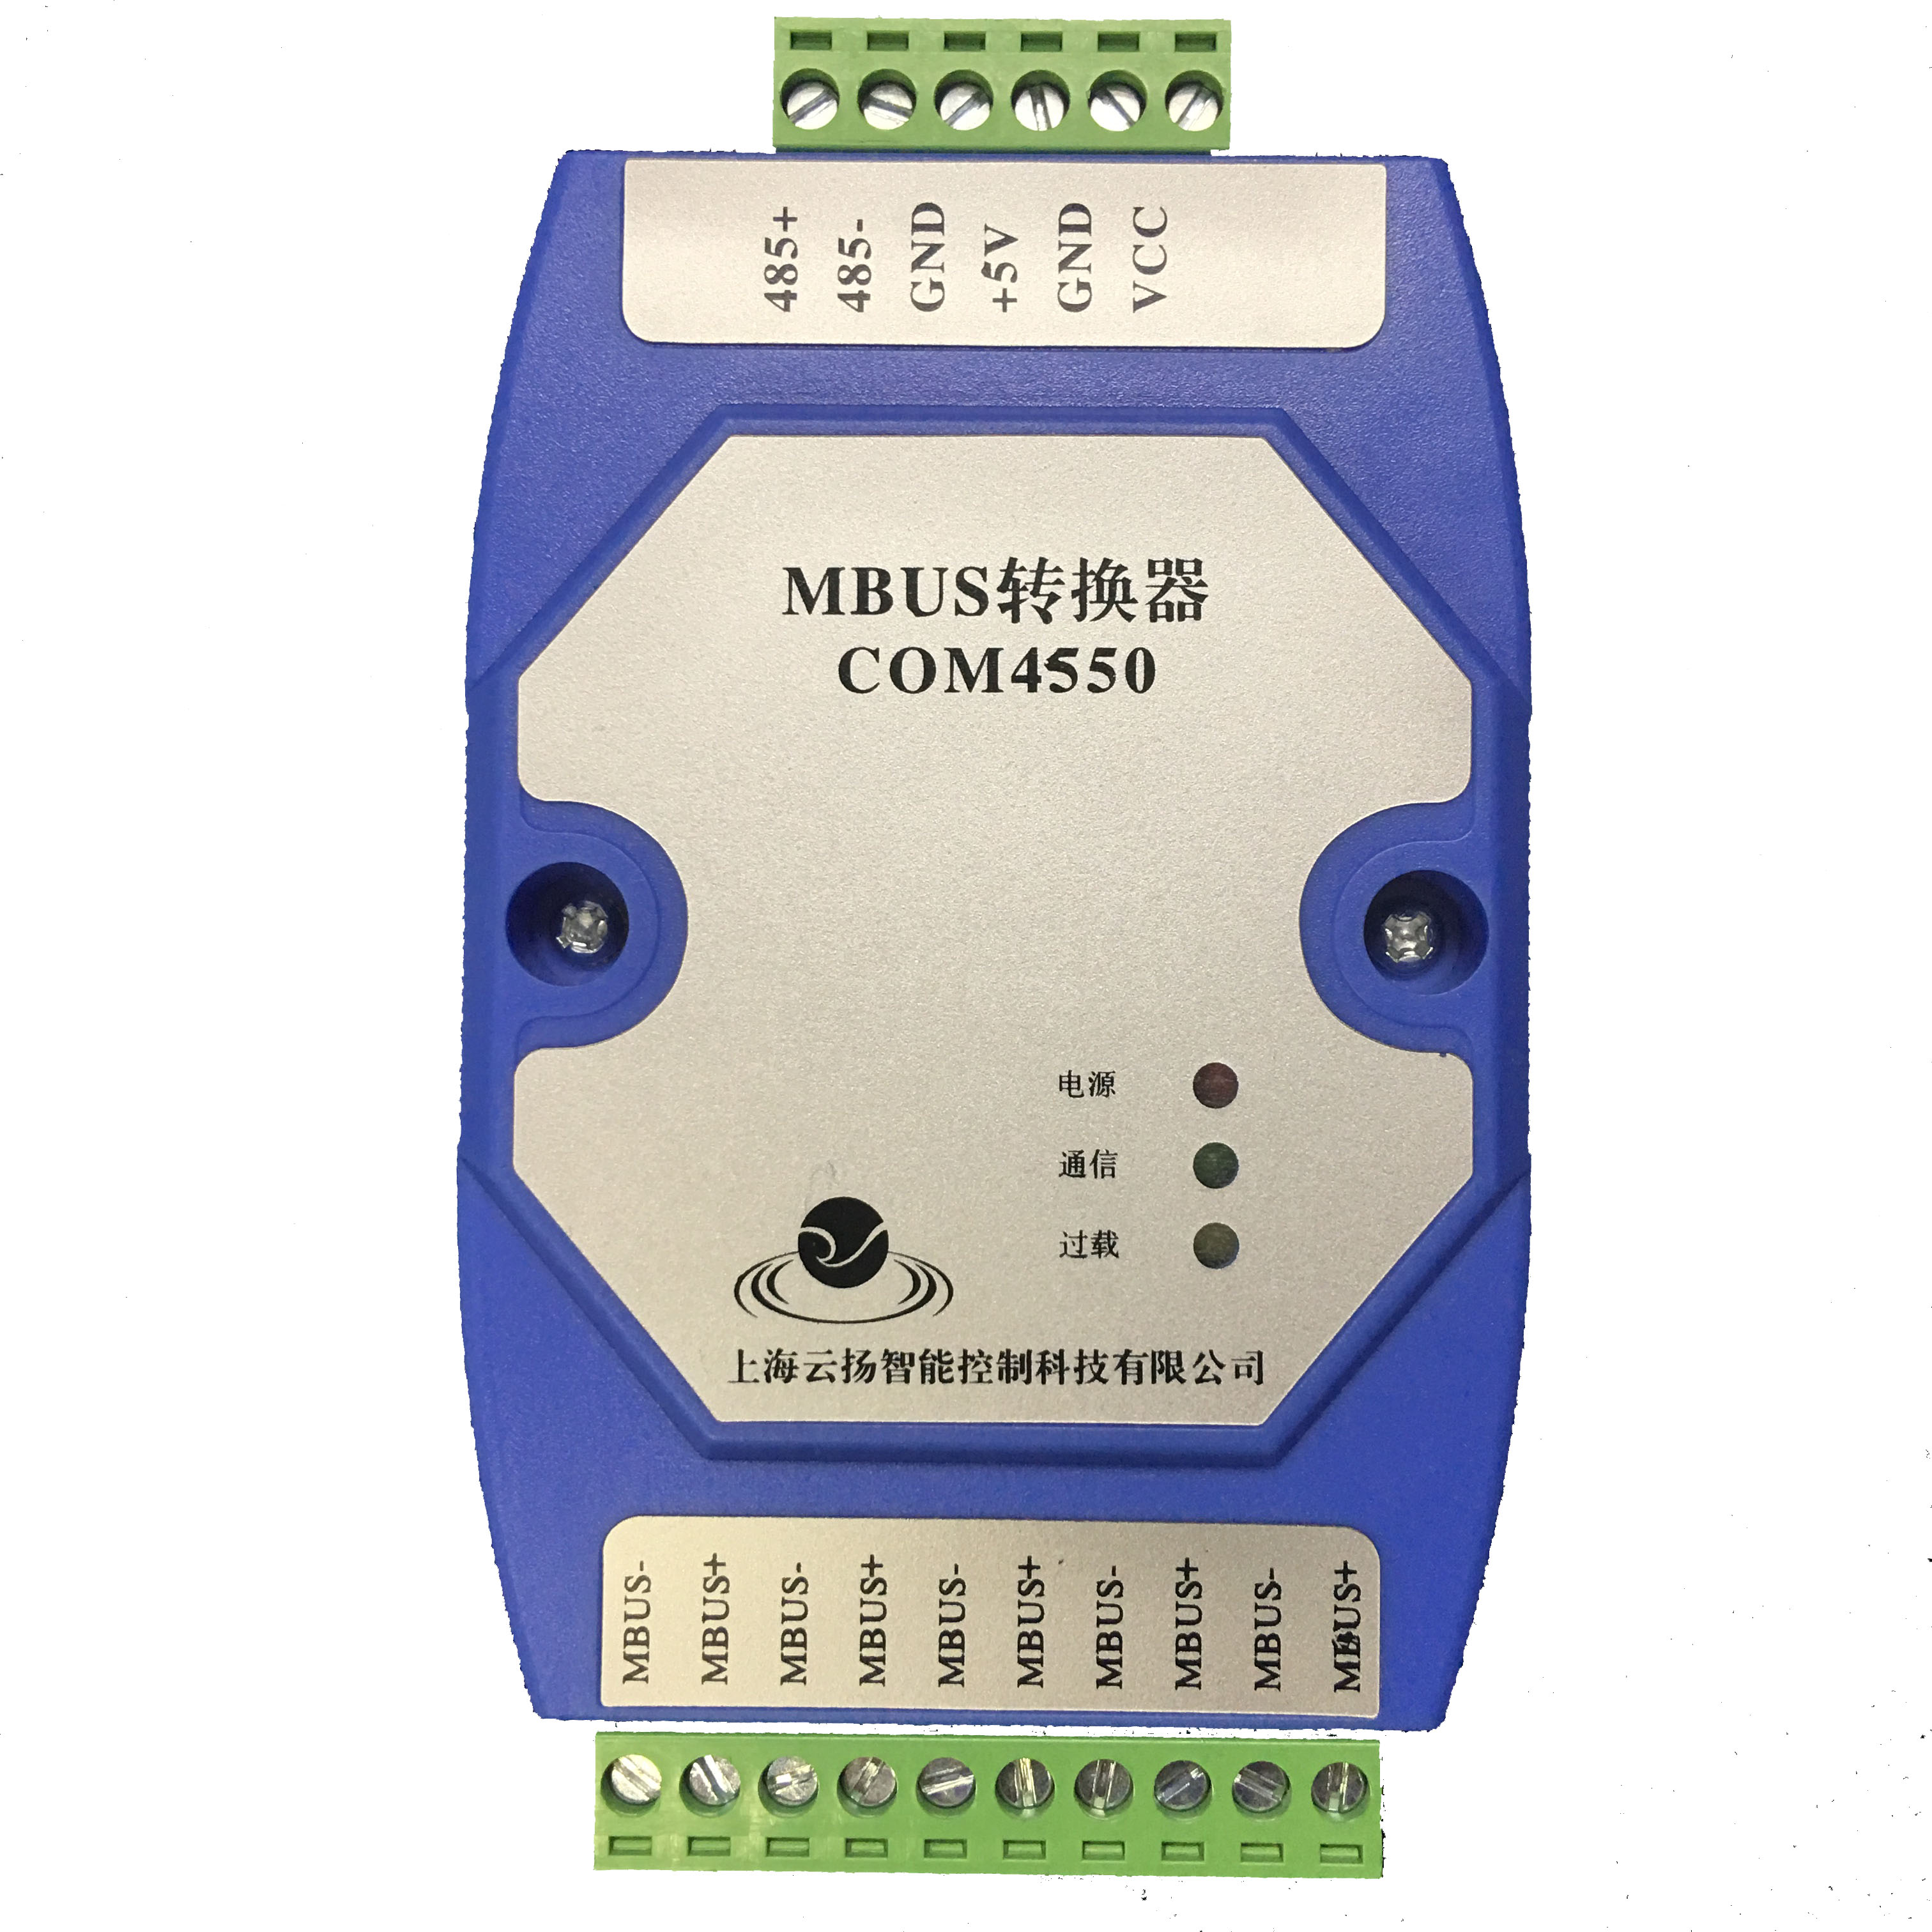 RS485 RS232 Serial to MBUS/M-BUS Concentrator Meter Reader Converter Module Super 300 Slave StationRS485 RS232 Serial to MBUS/M-BUS Concentrator Meter Reader Converter Module Super 300 Slave Station